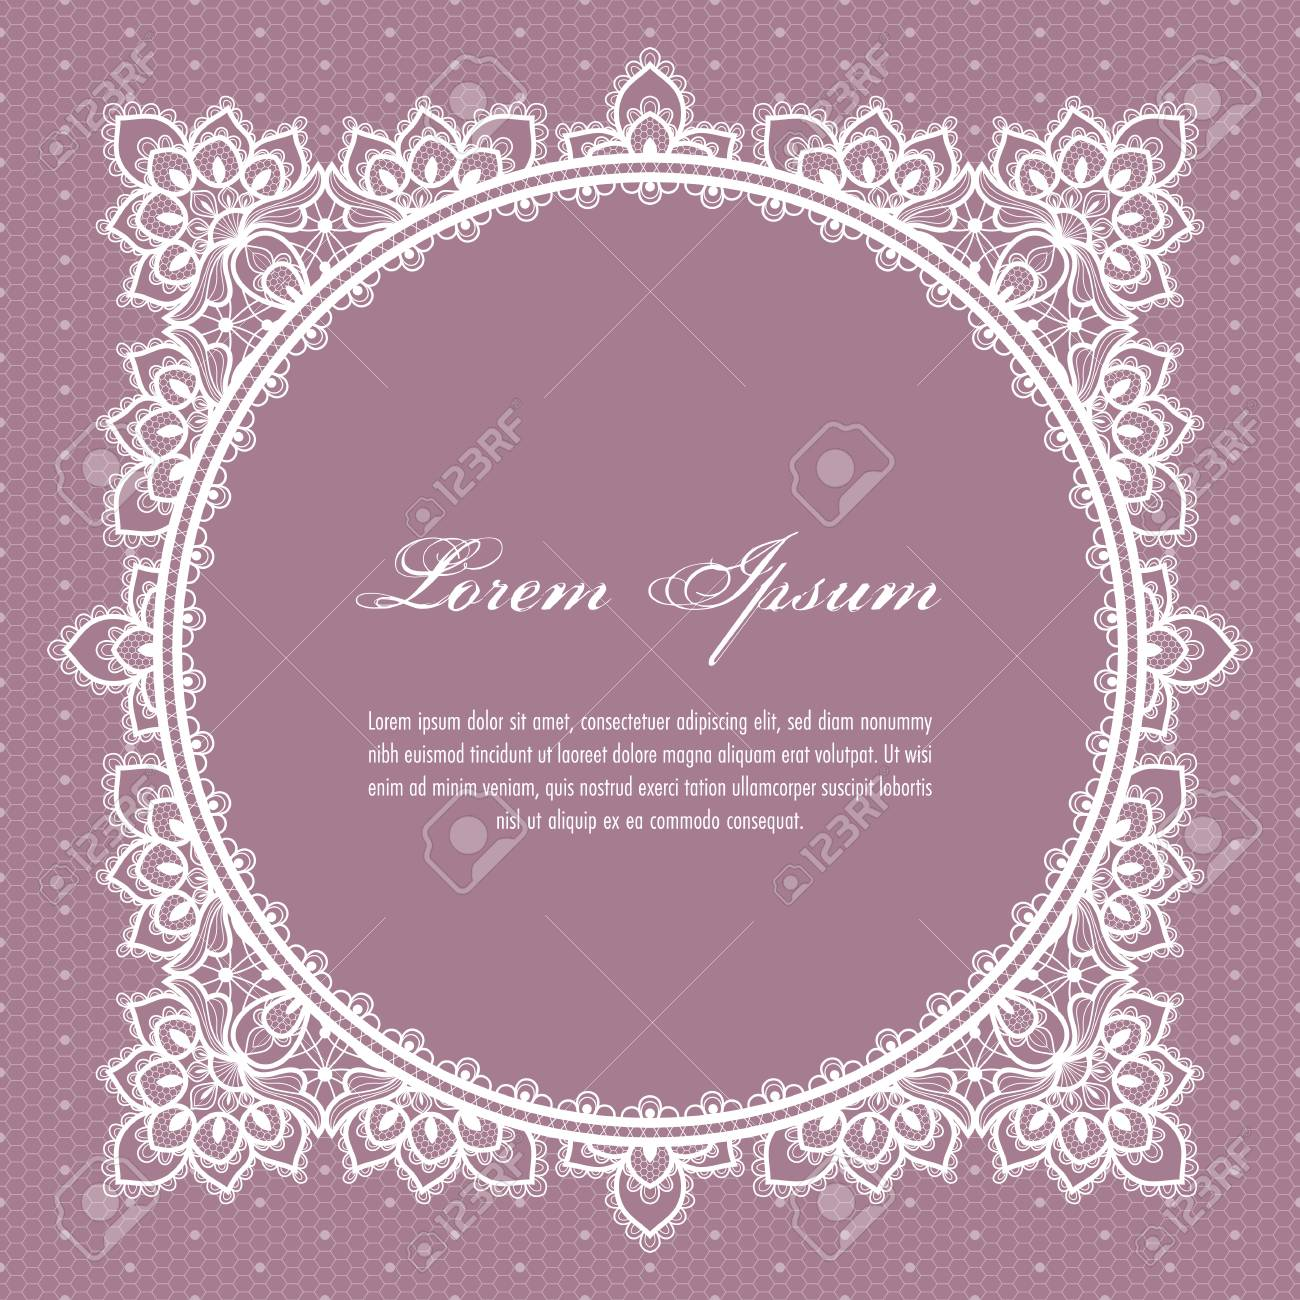 Wedding Card Or Invitation Template With A Filigree Lace Floral